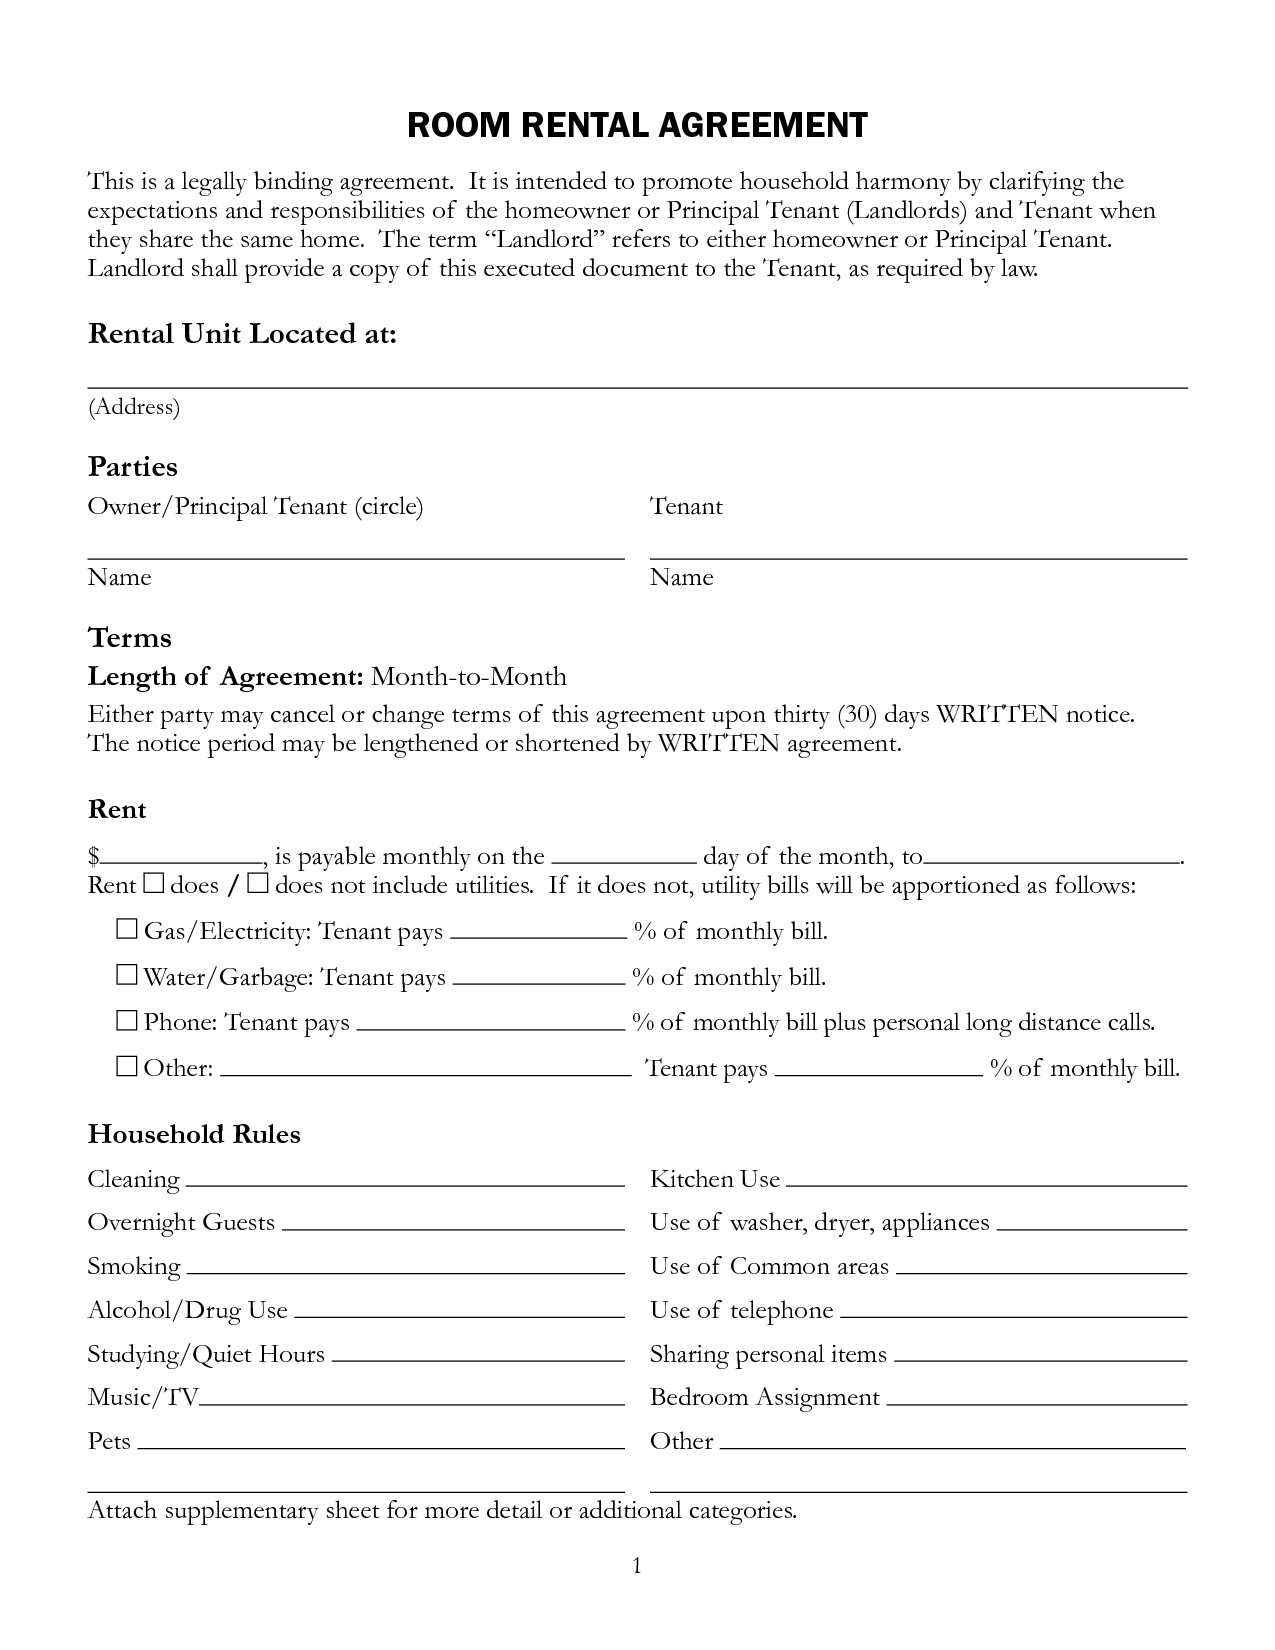 Printable Room Rental Agreement Template Free